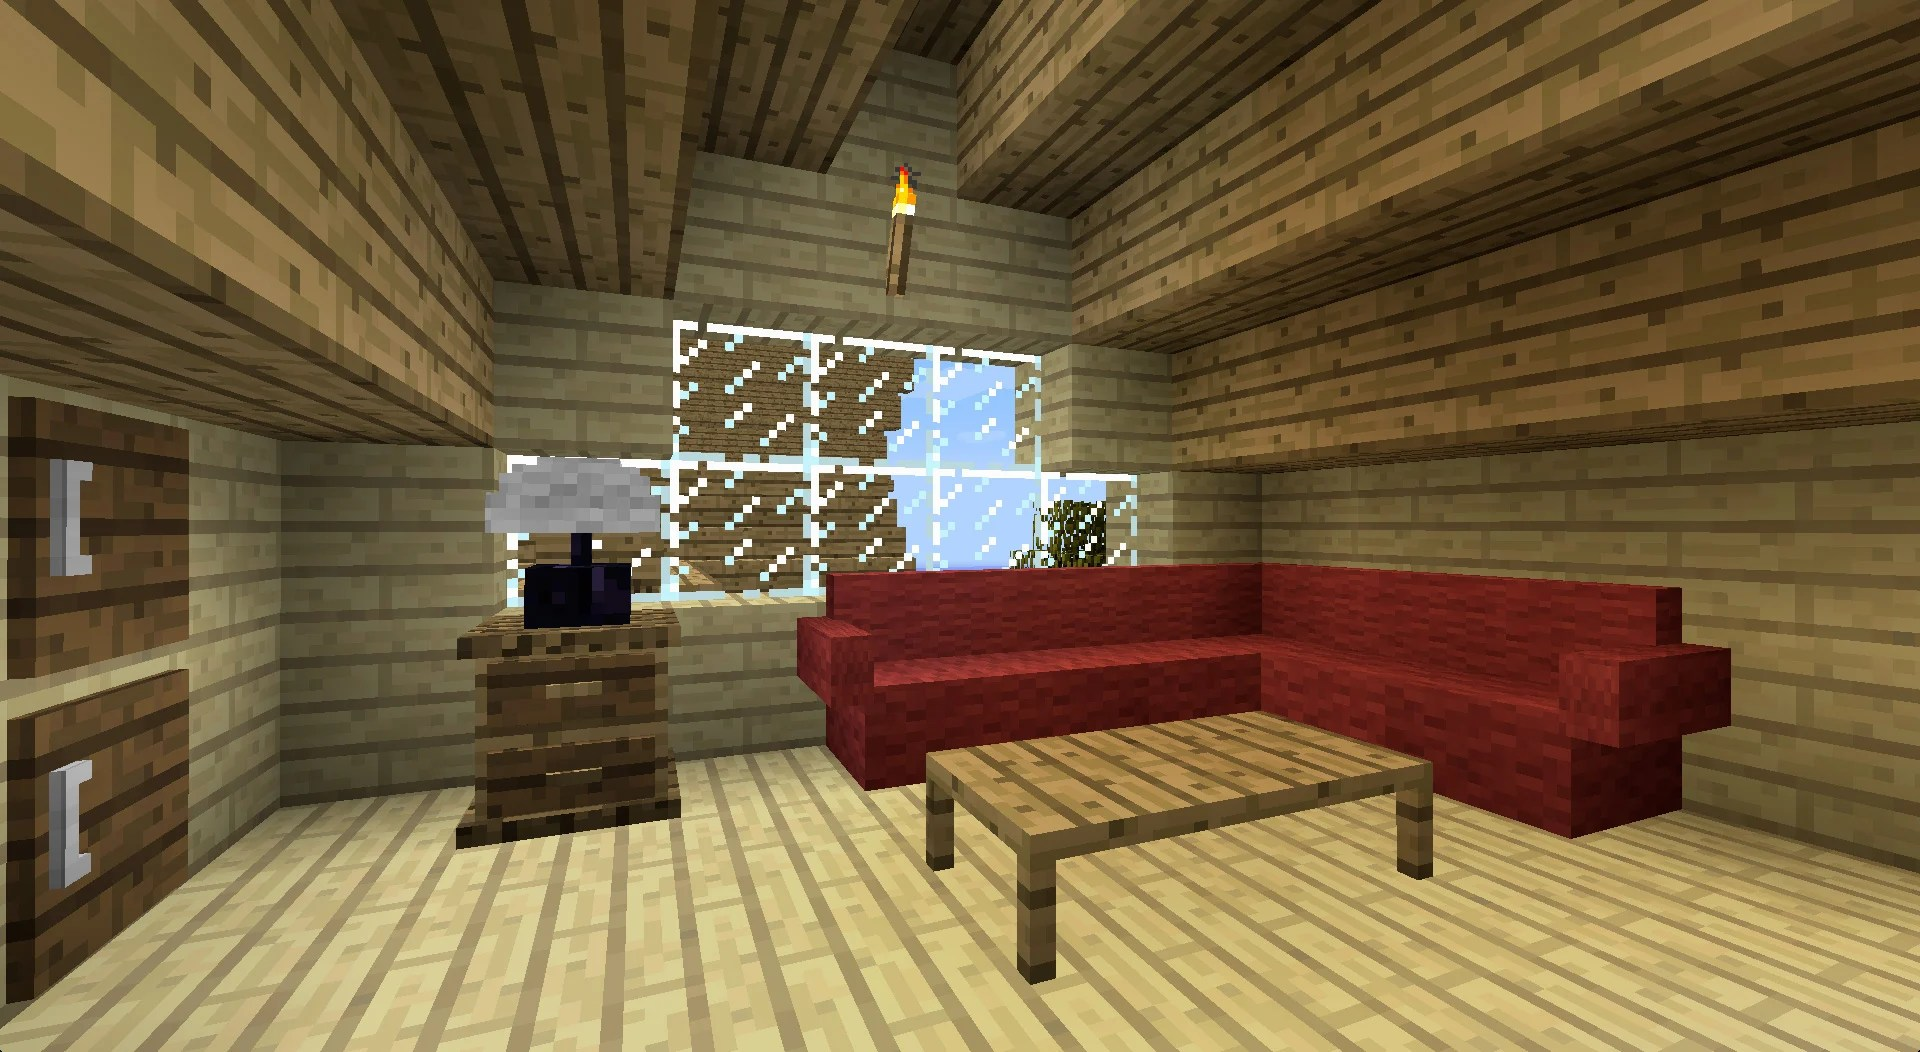 Minecraft Kitchen Mod 1.12.2 Furniture Mod Minecraft Mods